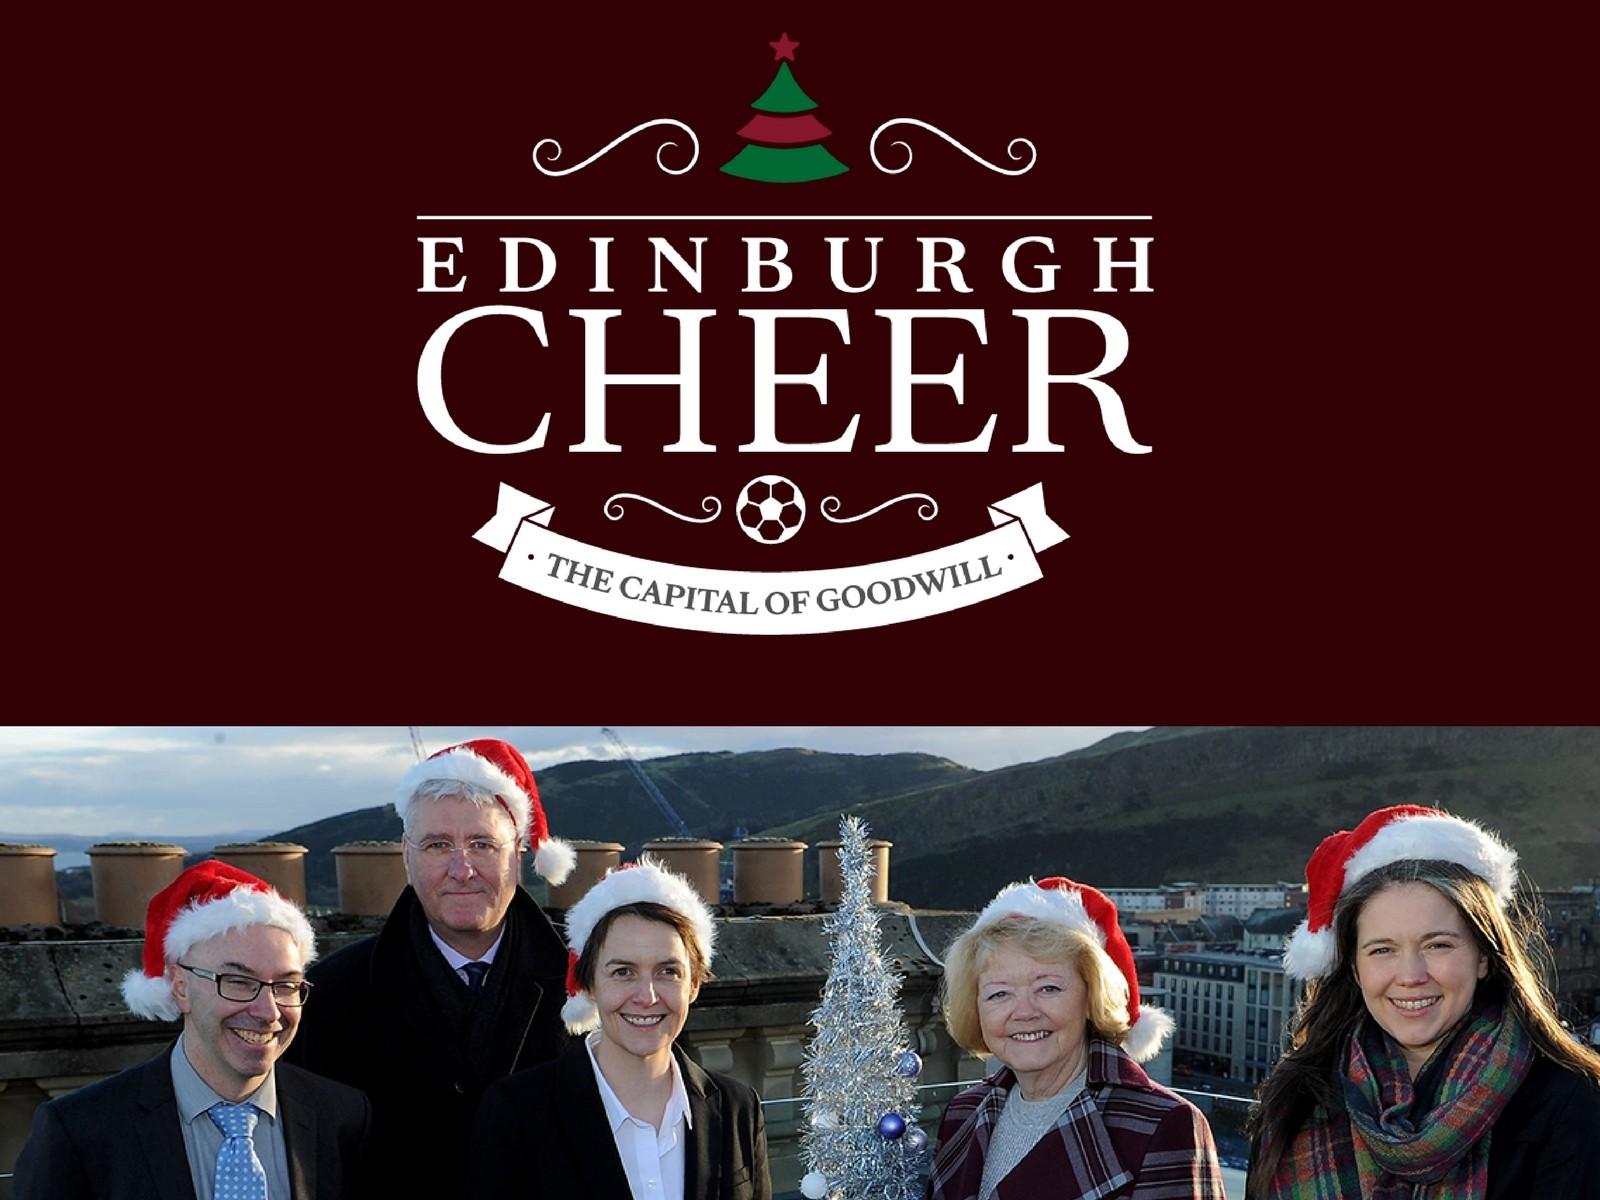 » CHRISTMAS CAMPAIGN – EDINBURGH CHEER